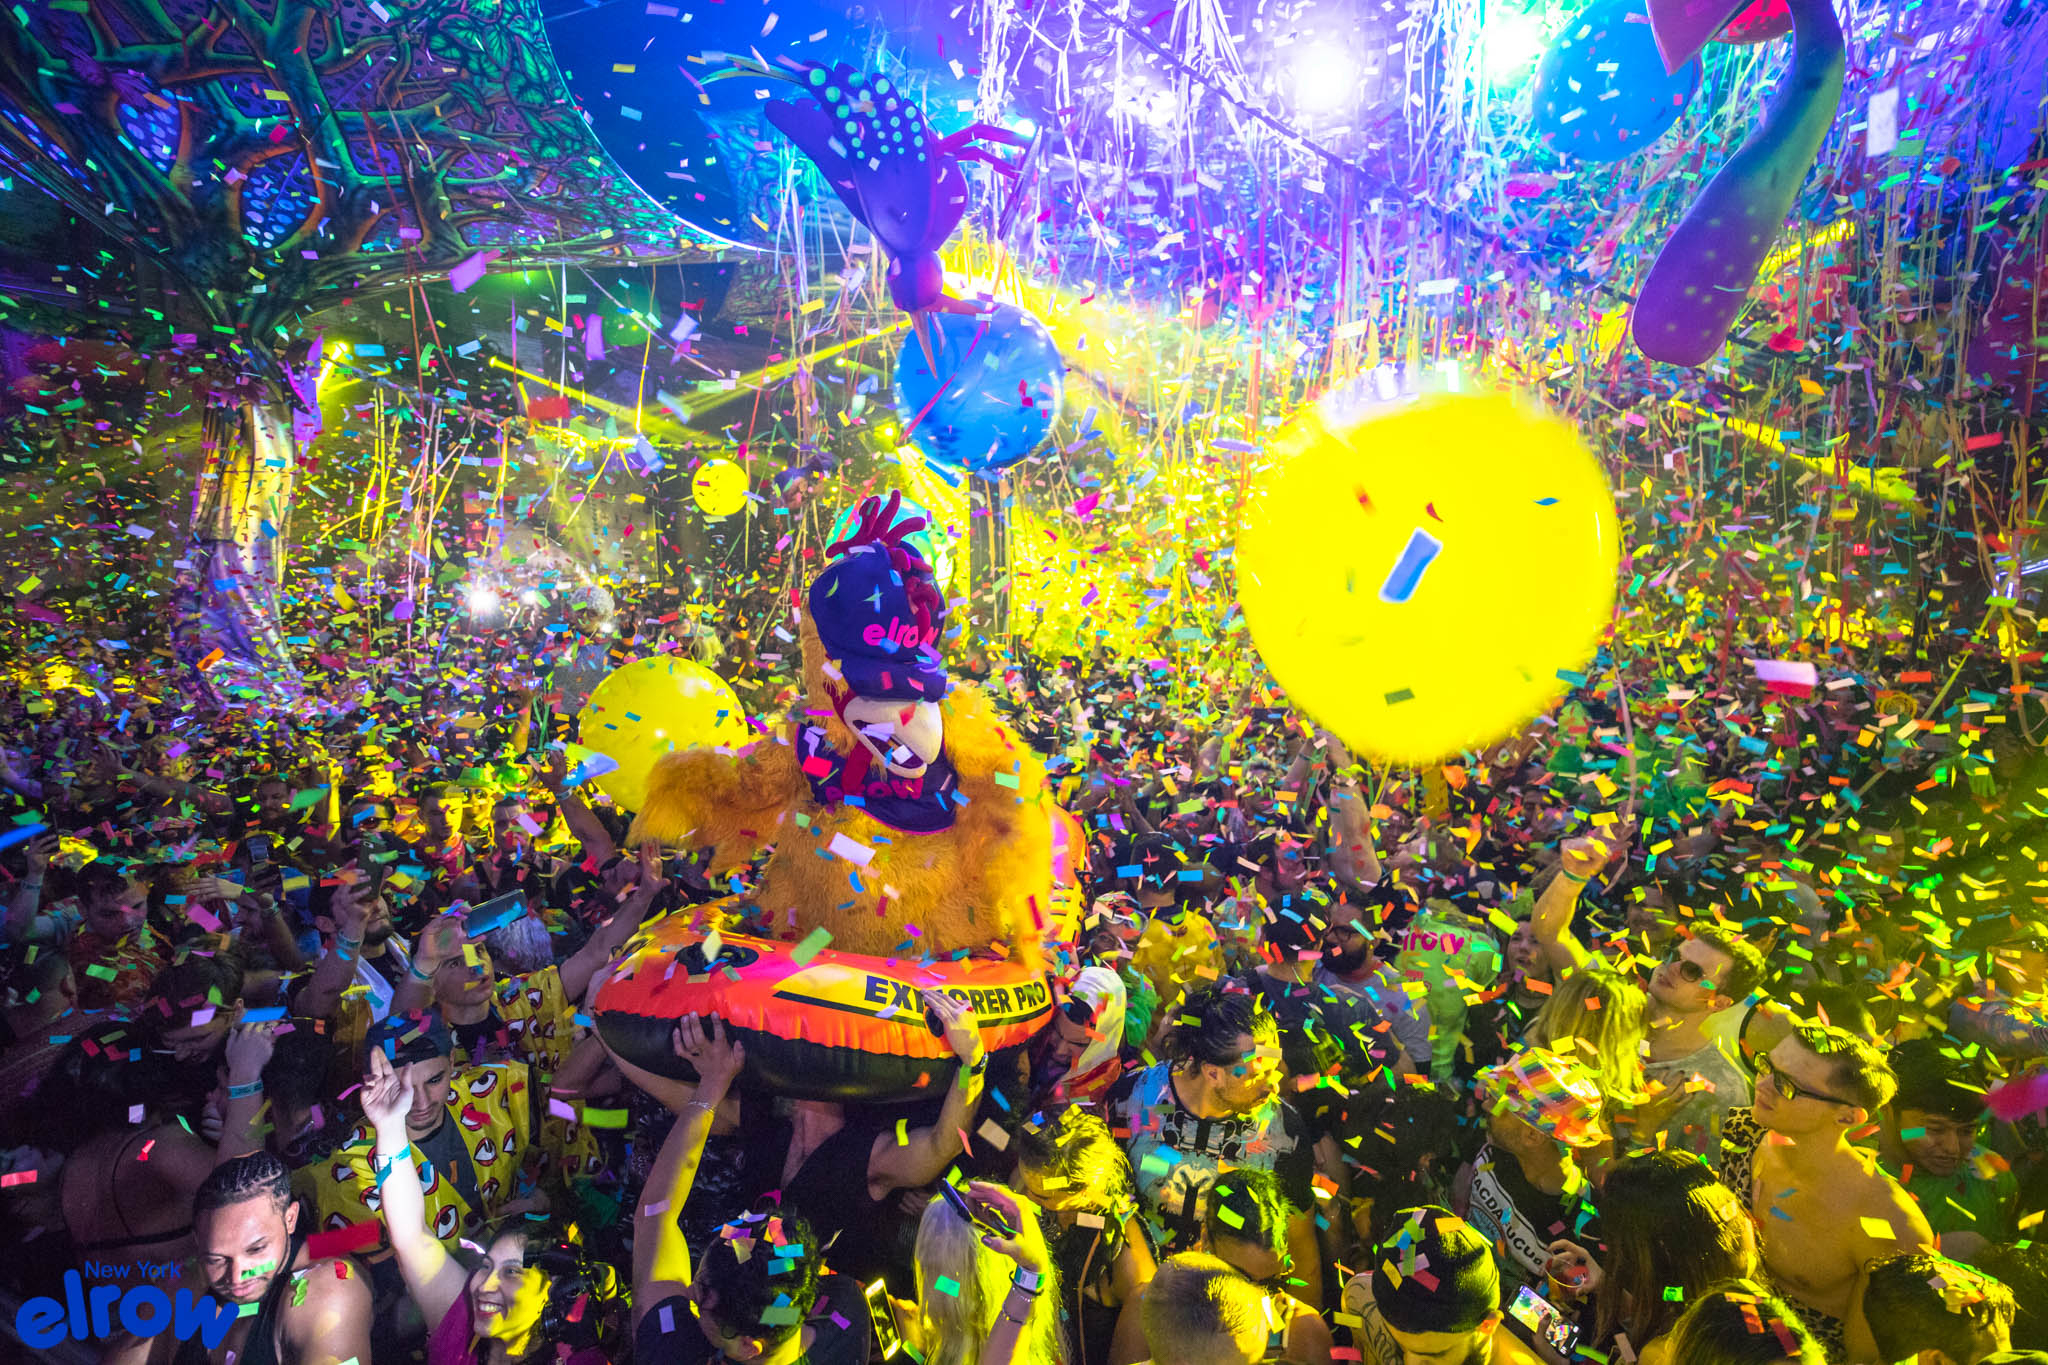 Party Organizers Elrow Team With Wynn Hotels For Las Vegas With Regard To Las Vegas Live Music Calendar